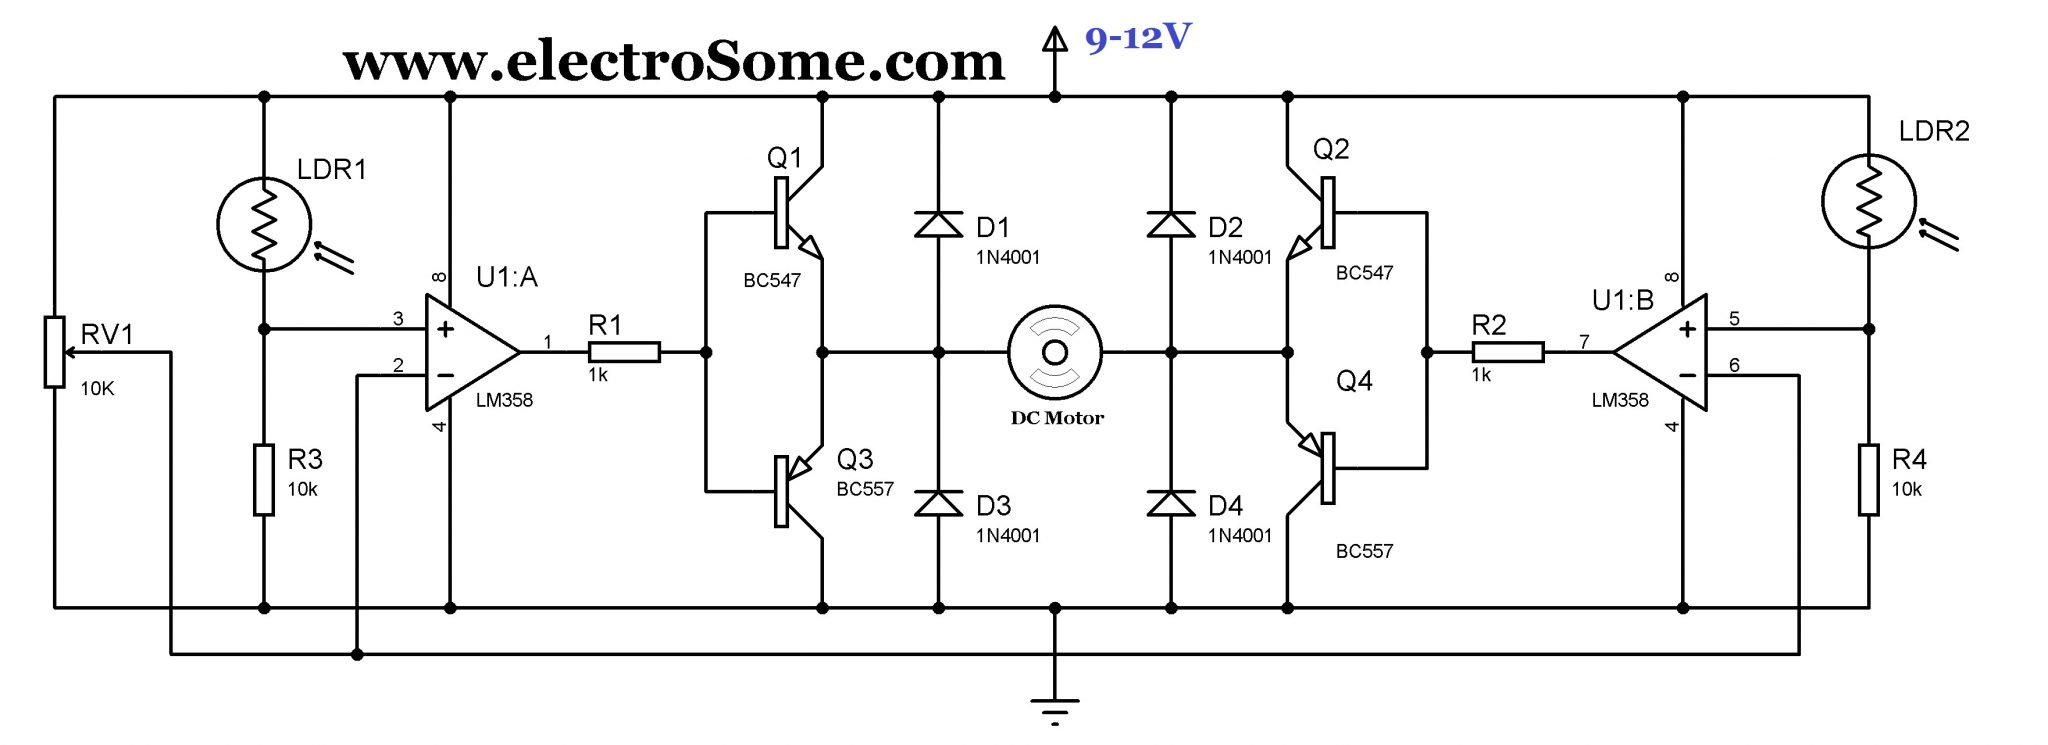 simple solar tracker circuit using lm358 rh electrosome com solar sun tracker circuit diagram solar tracker schematic diagram